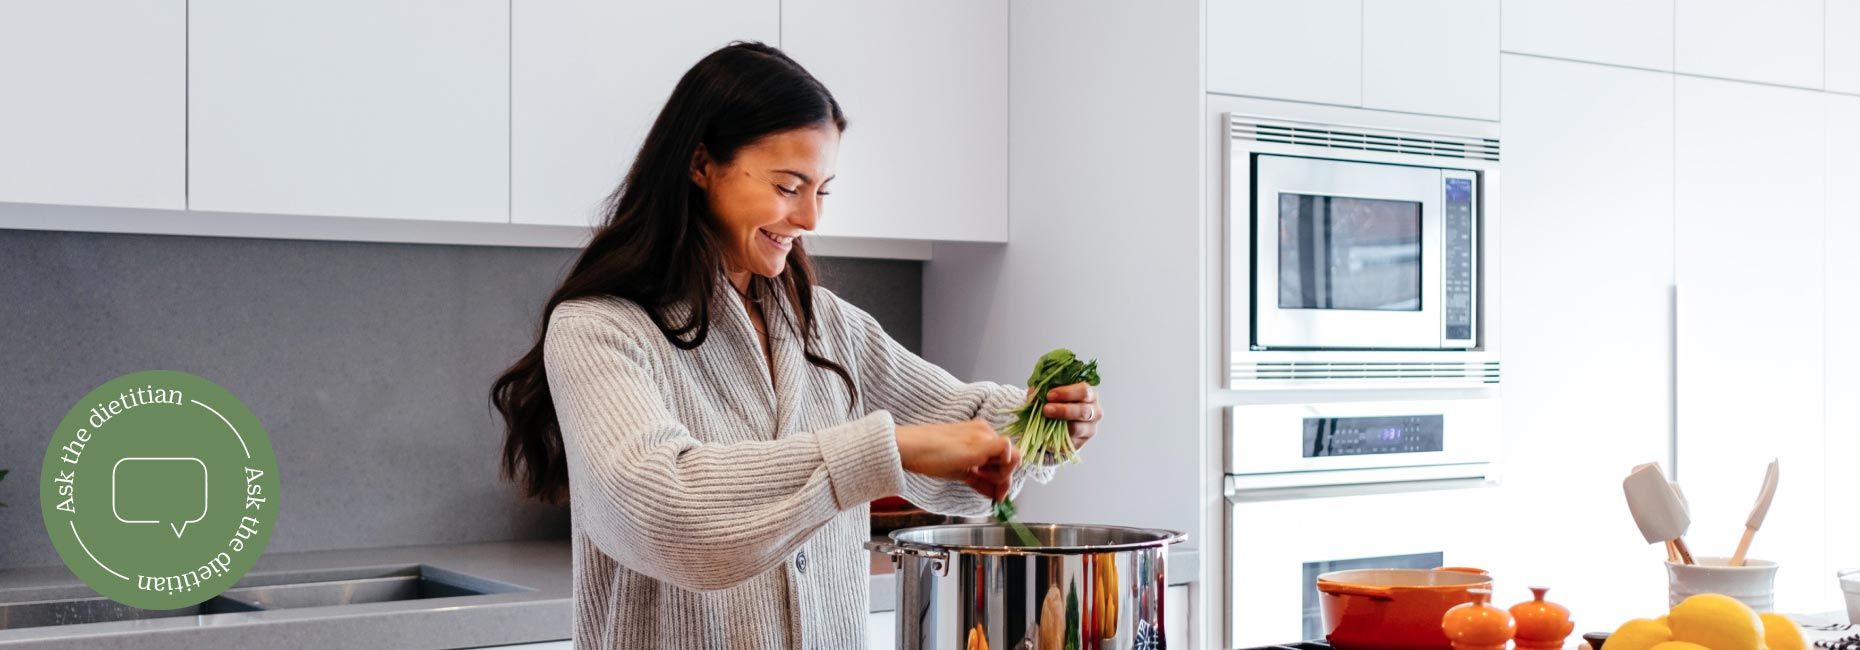 Do you have IBS? Here's 5 tips for adding fiber to your diet!